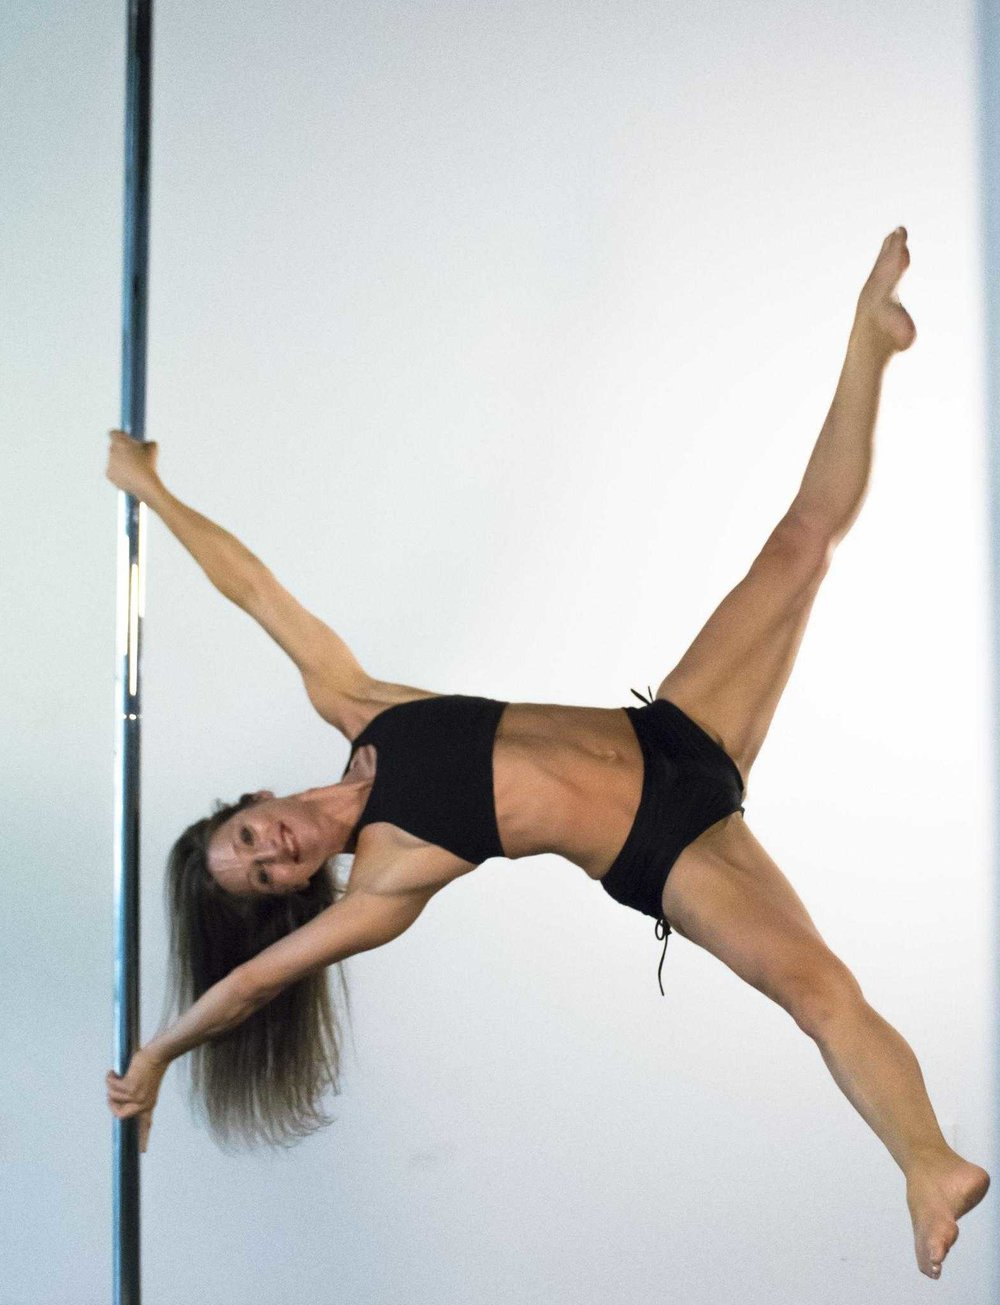 Yael Kallin  IG:  @yaelkallin   Yael is a 12 year pole veteran since 2007, who started with almost no dance or gymnastics background. She fell in love with pole after her first class and never looked back. She is a firm believer in pole being for anyone who really wants it, no matter their gender, size or background. She feels pole can become a lifelong journey with wonderful benefits beyond any initial expectations. No matter how long you have poled, there is always more to learn, and more ways to develop your craft. Yael enjoys teaching all levels from beginner to advanced, with a special love for inversions. You can also find her occasionally competing in local competitions or taking the stage to perform around Seattle. She also poles regularly with her daughter Grace, and specializes in doubling with a partner to create interactive, duet based aerial art. When not poling you can find Yael working full time in advertising sales, jogging, and crafting.